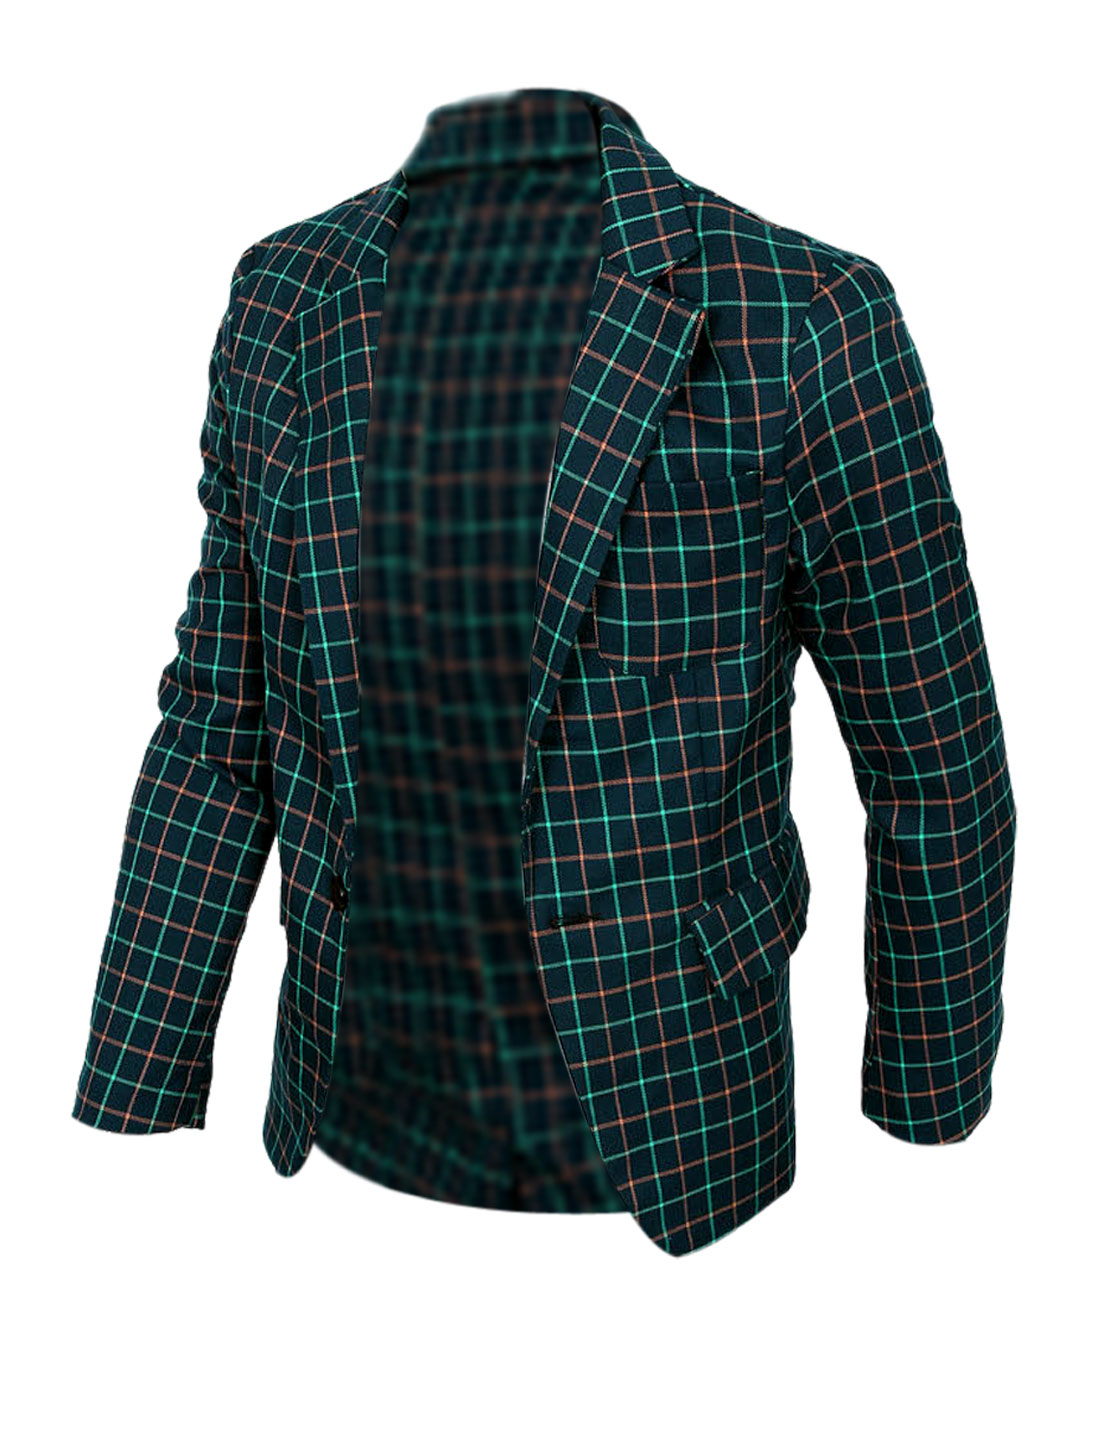 Man's Green Plaids One Button Easy-wear Blazer Jacket S